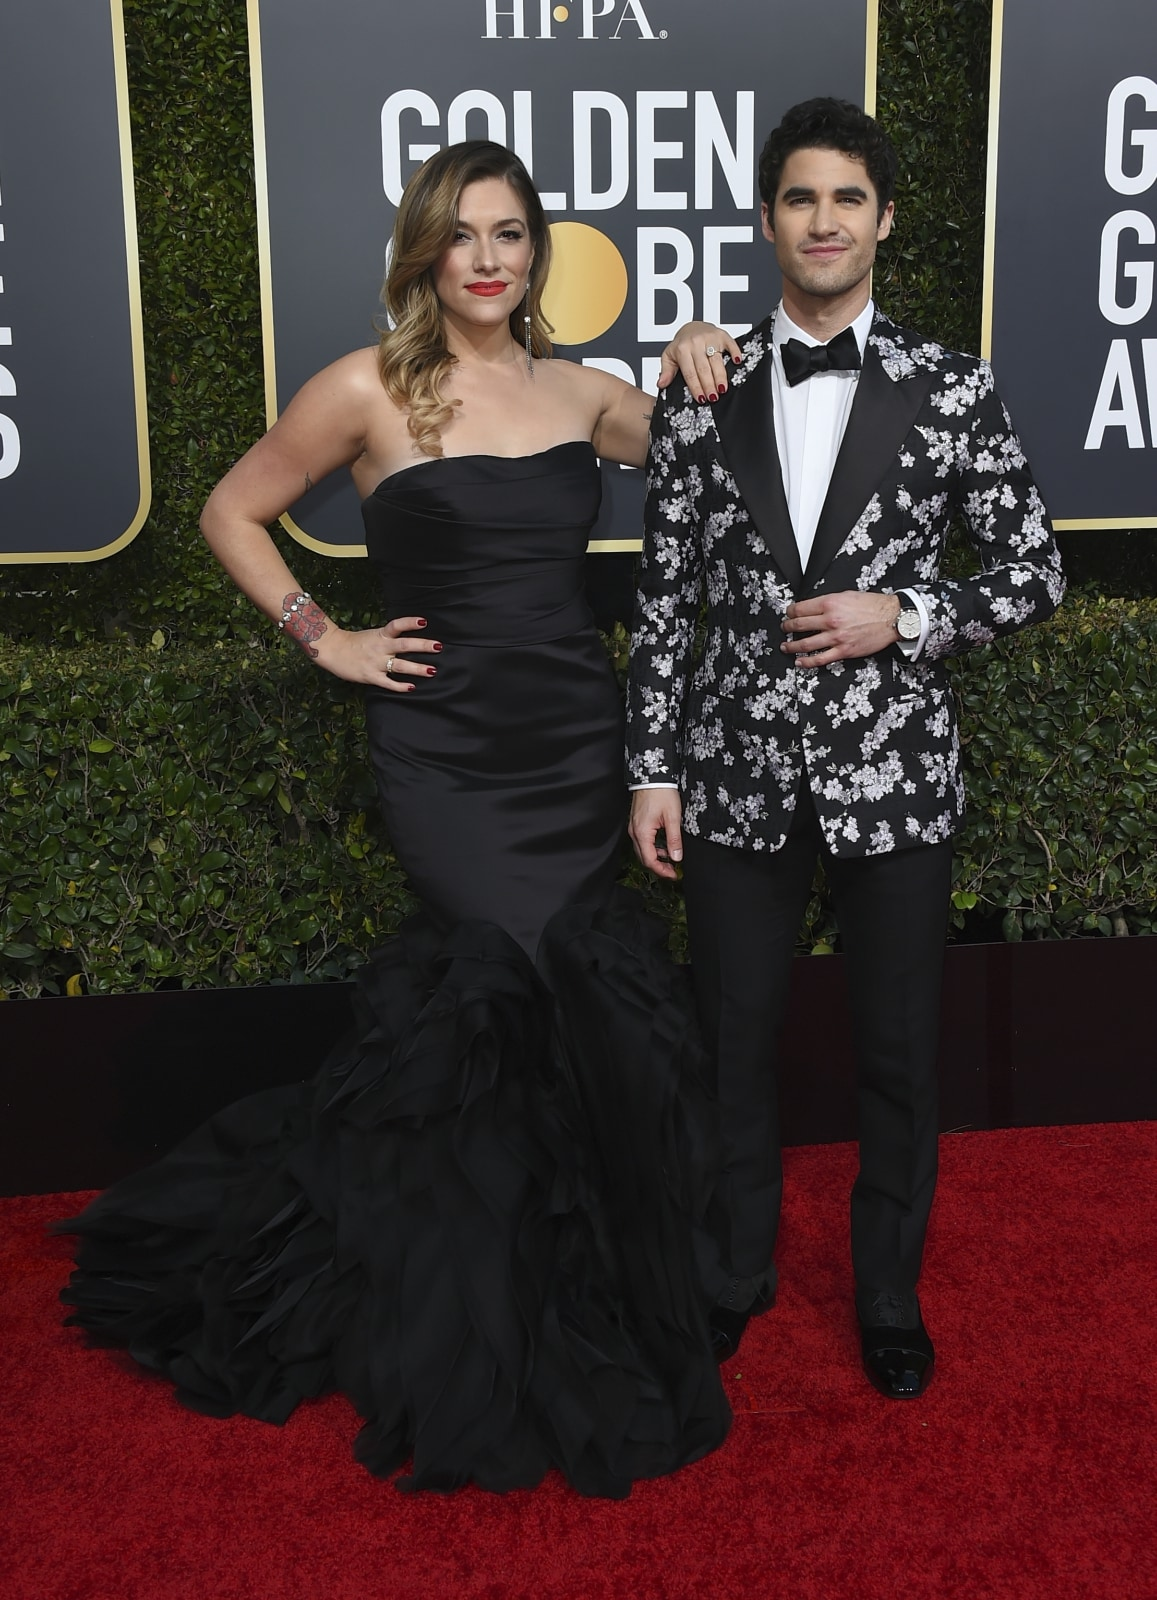 Mia Swier, left, and Darren Criss arrive at the 76th annual Golden Globe Awards at the Beverly Hilton Hotel on Sunday, January 6, 2019, in Beverly Hills, California. (Photo by Jordan Strauss/Invision/AP)